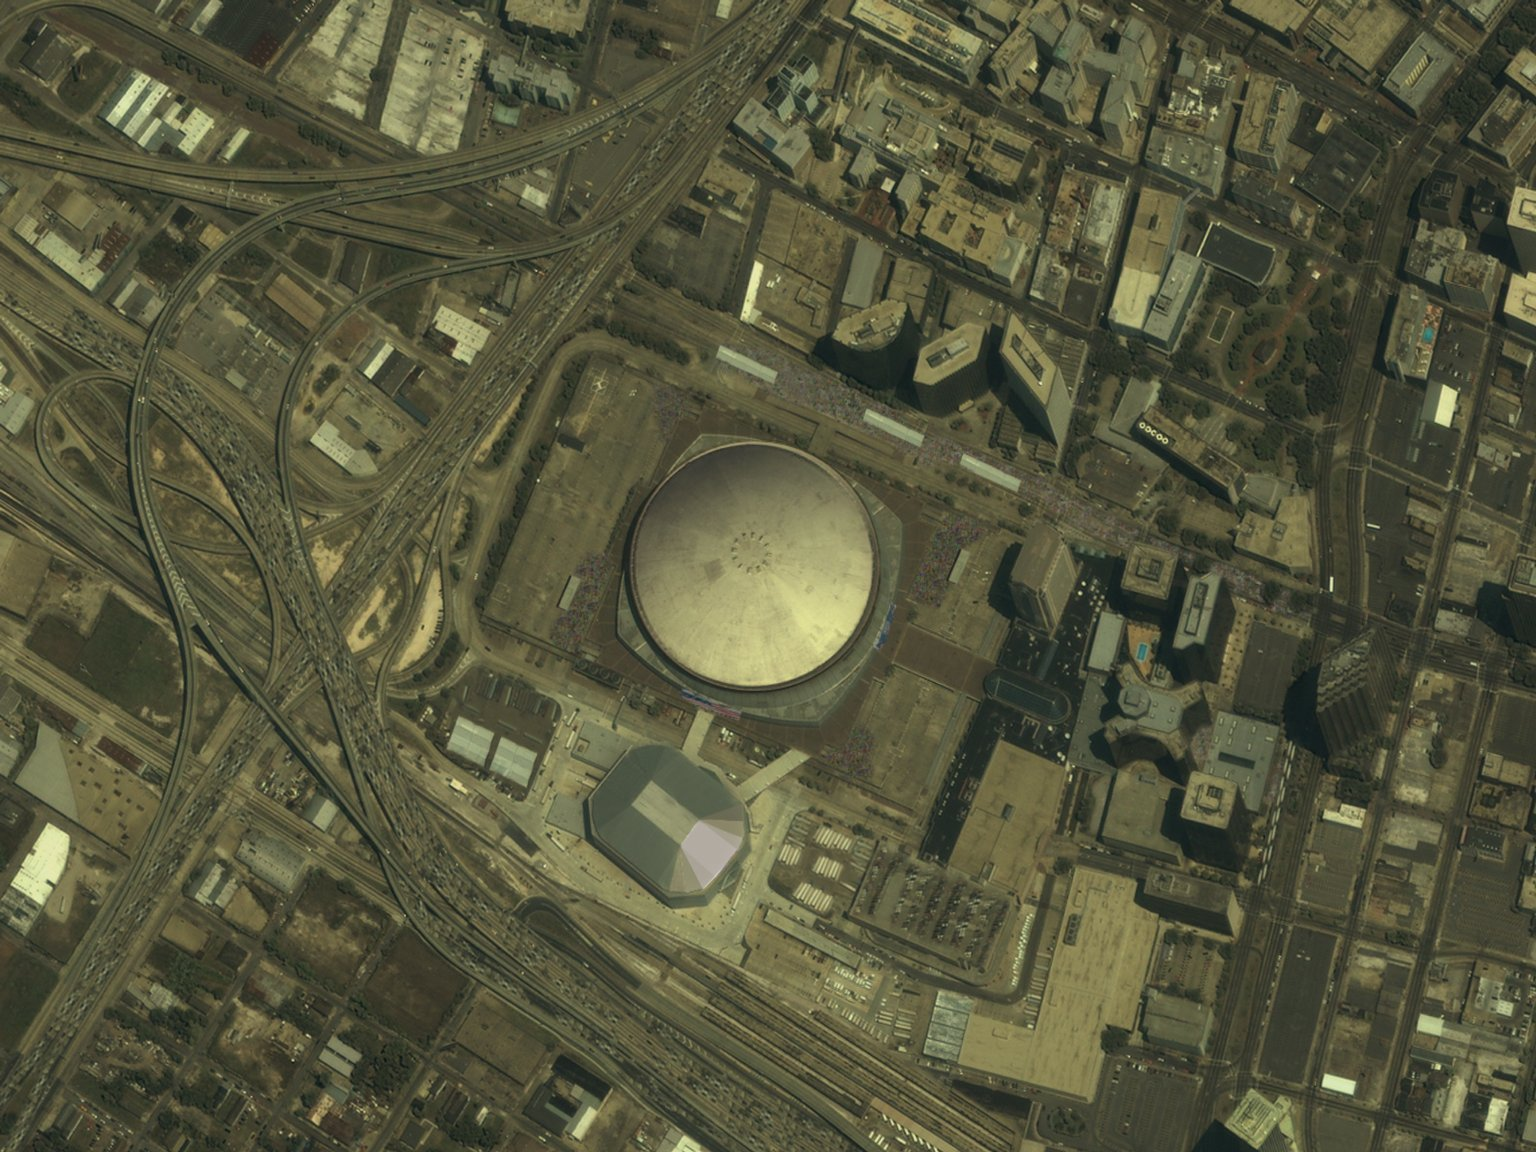 Great Zoom out of New Orleans, LA: The Louisiana Superdome